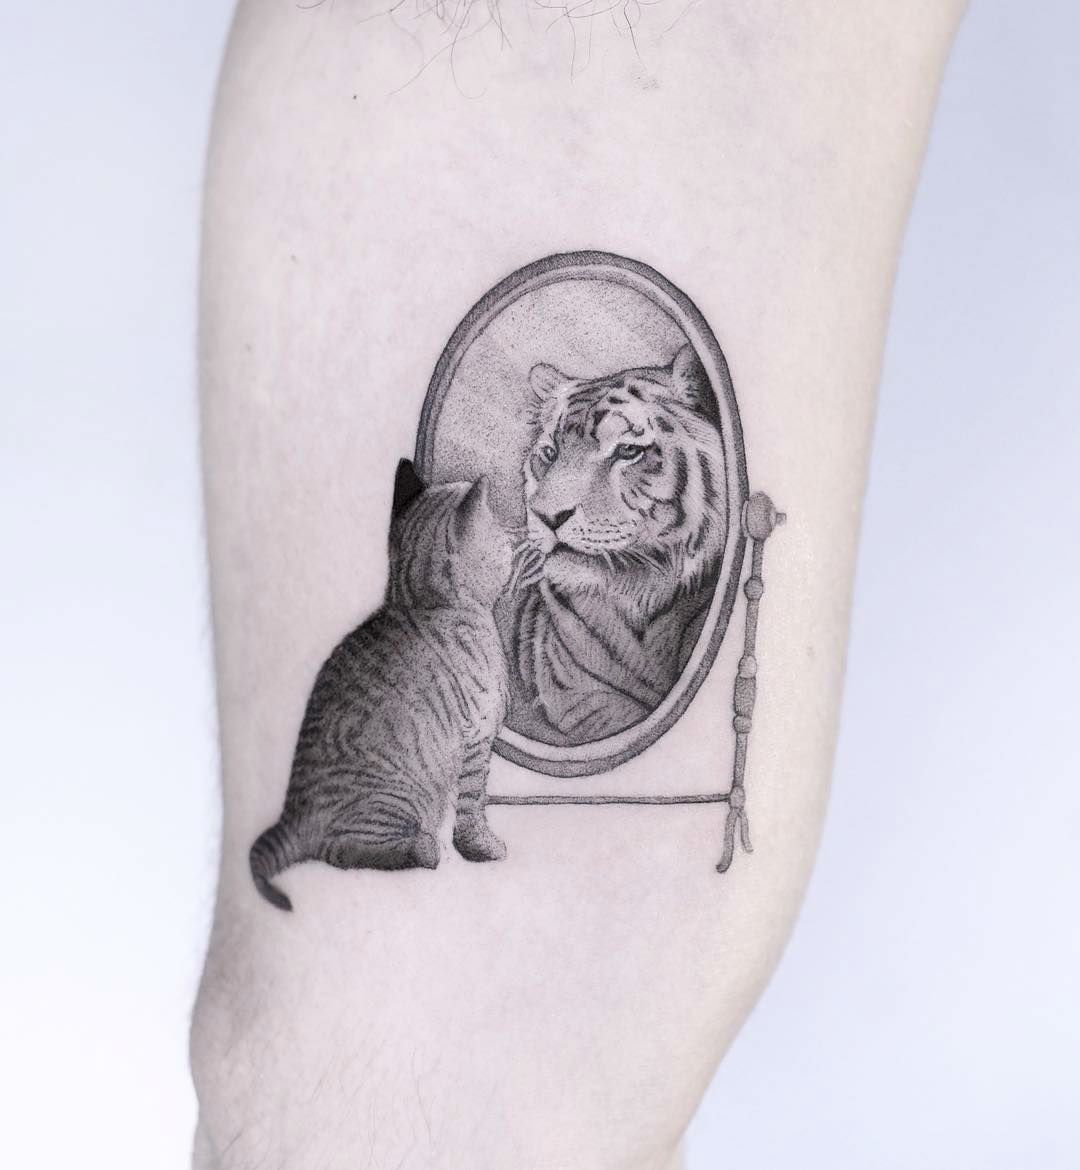 Hyper Realism Tattoos Transform Photographs into Miniature Ink Art by Edit Paints